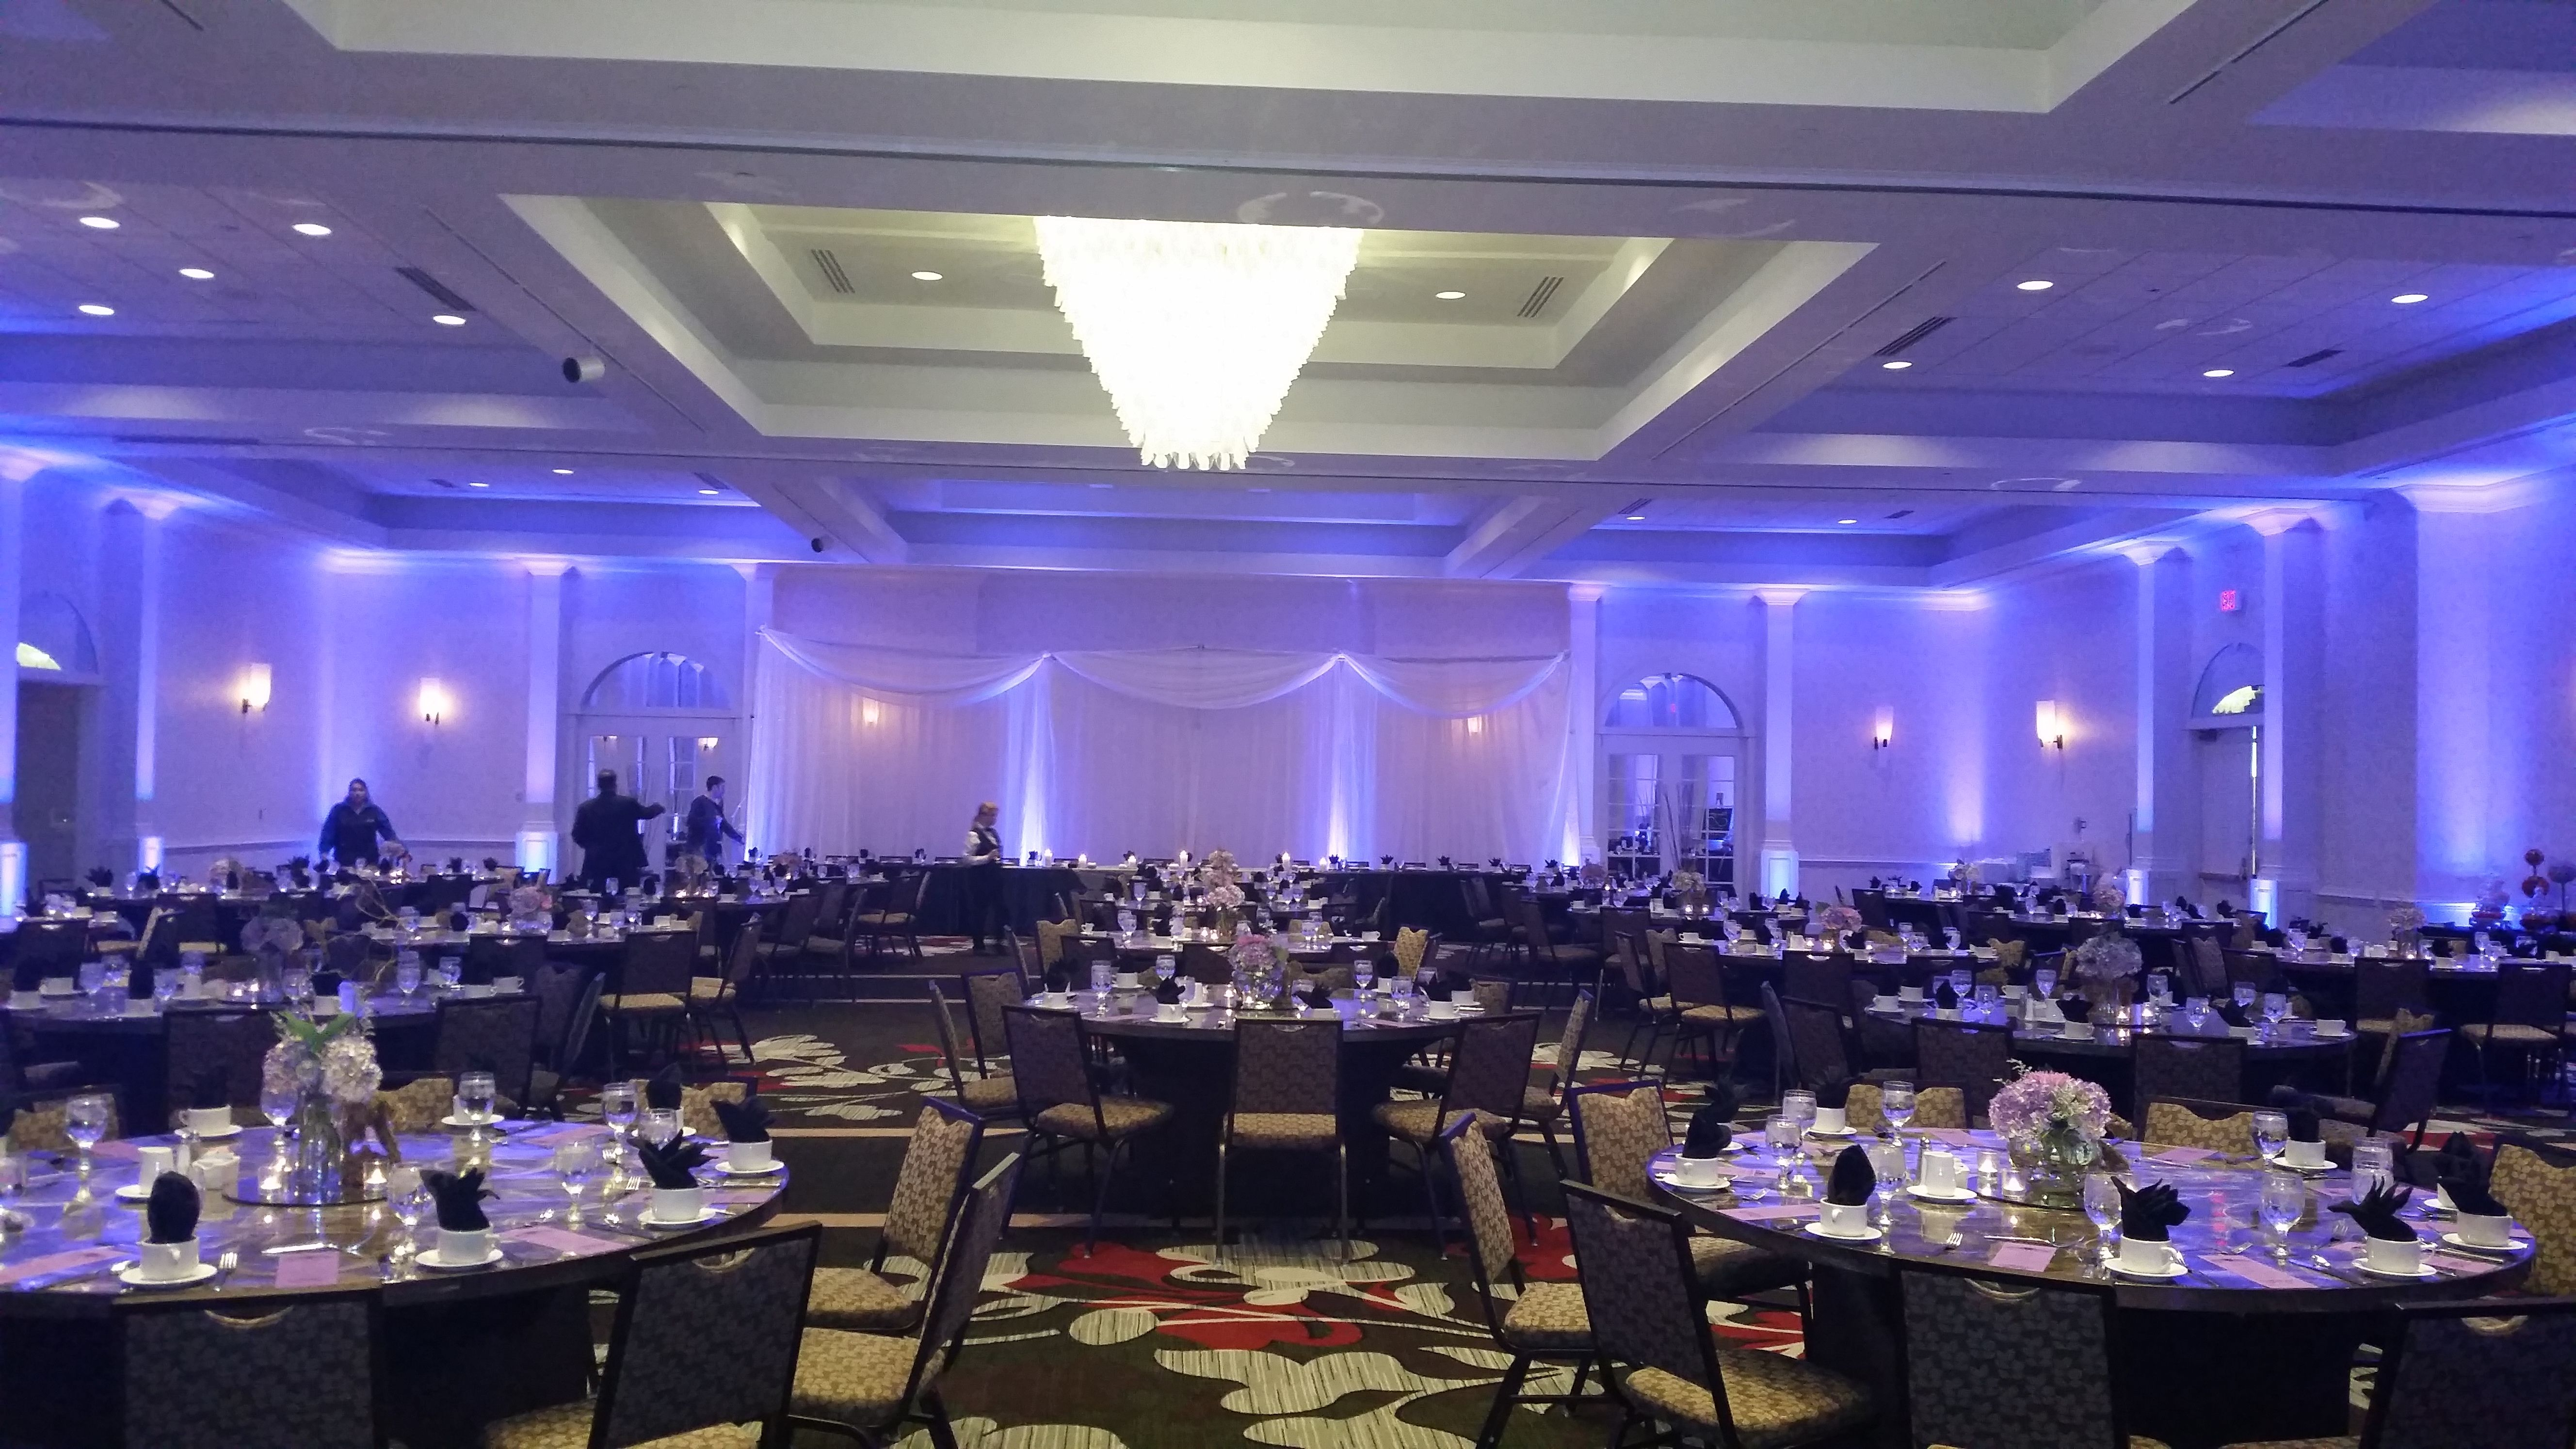 Lighting - it's all about the lighting!!!  What a WOW factor for your guests.